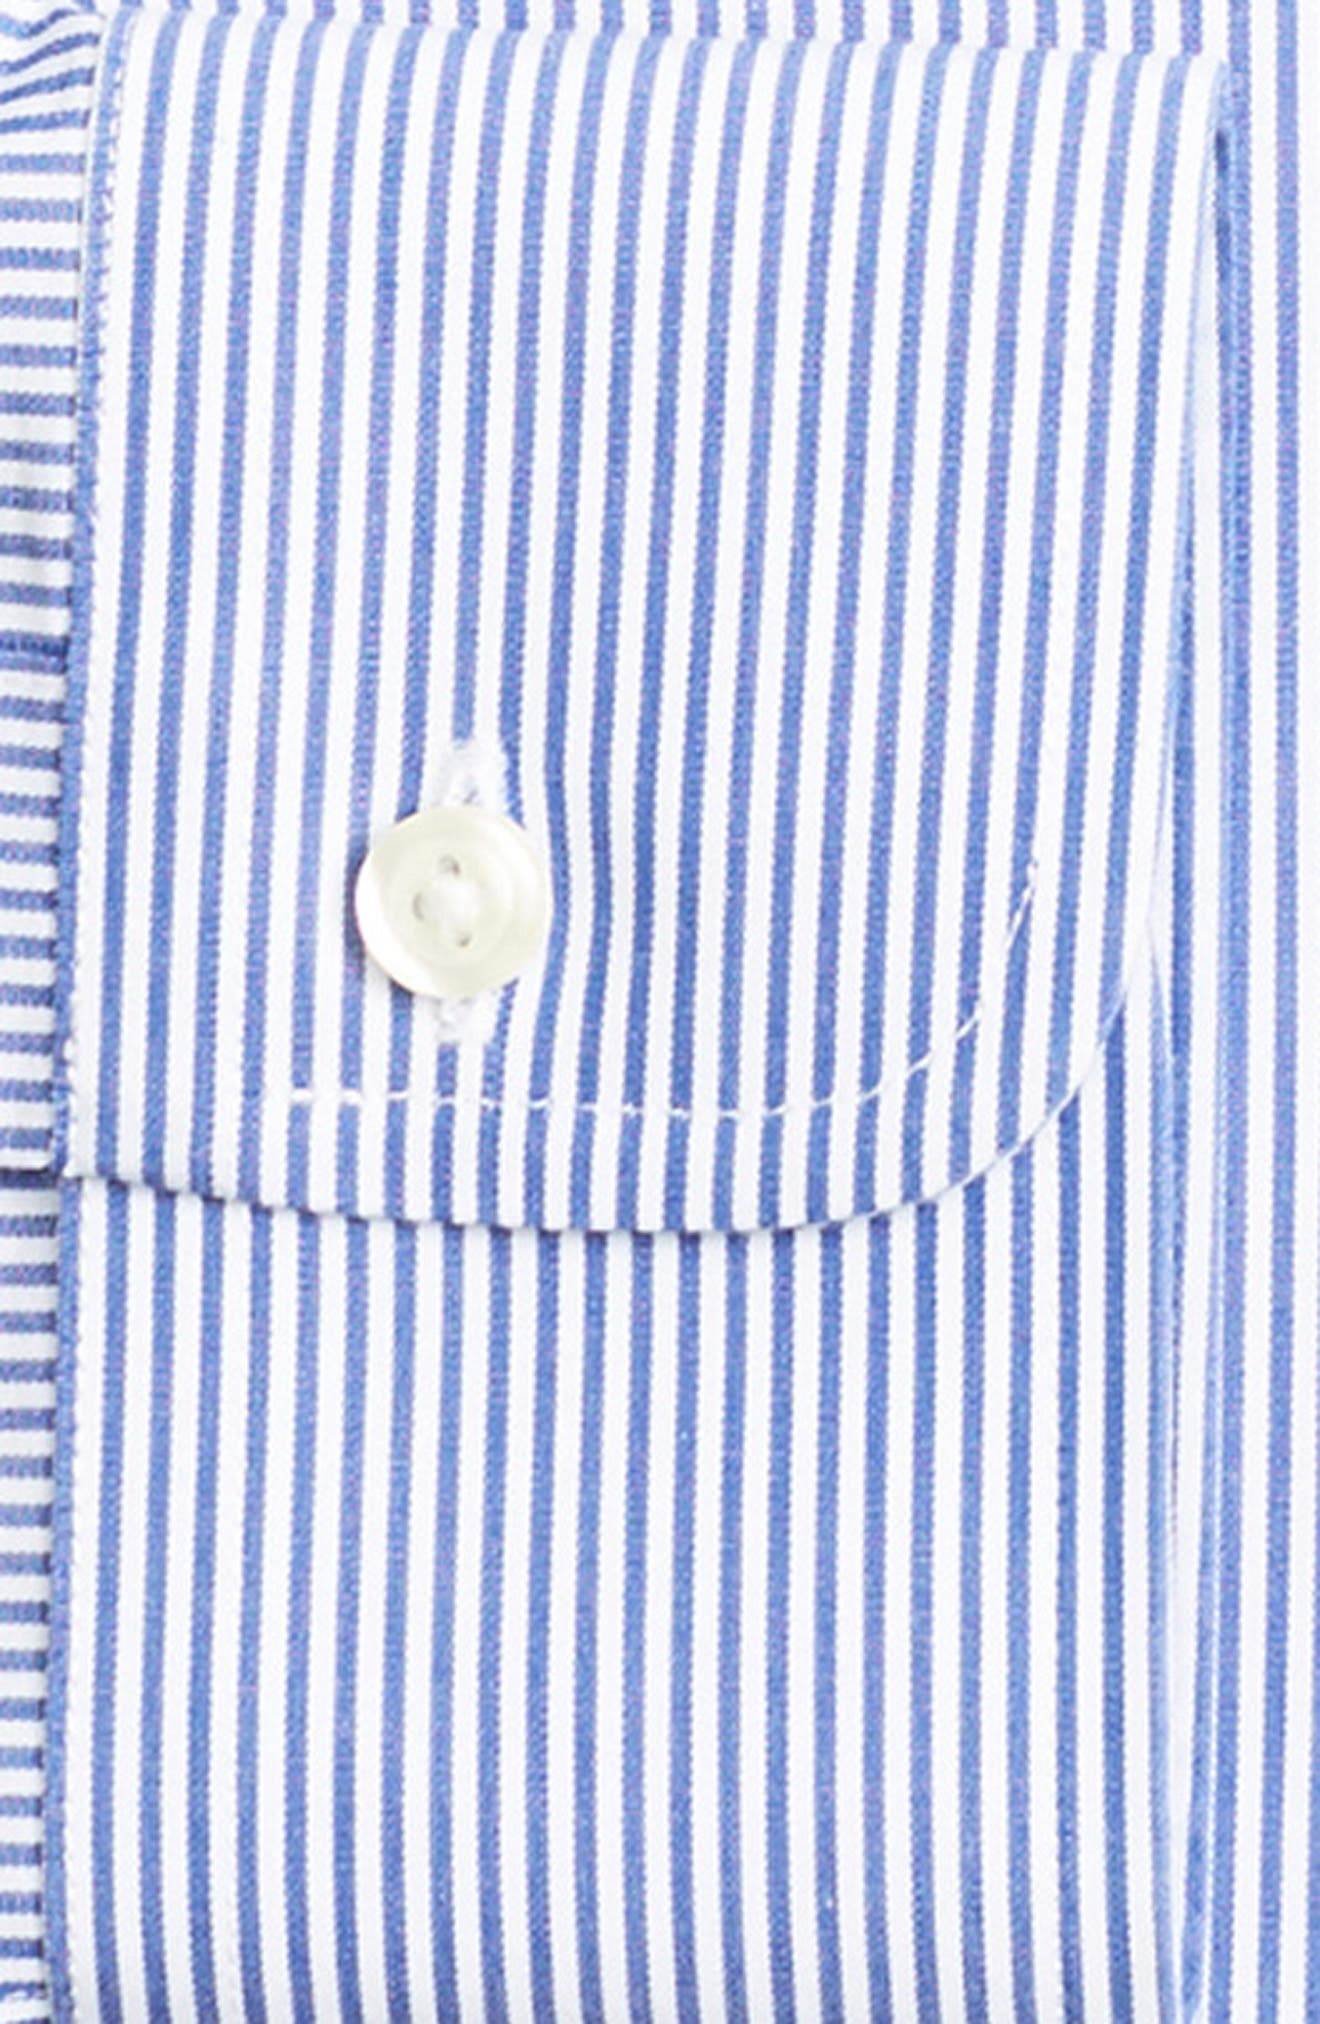 Regular Fit Stripe Dress Shirt,                             Alternate thumbnail 2, color,                             BLUE